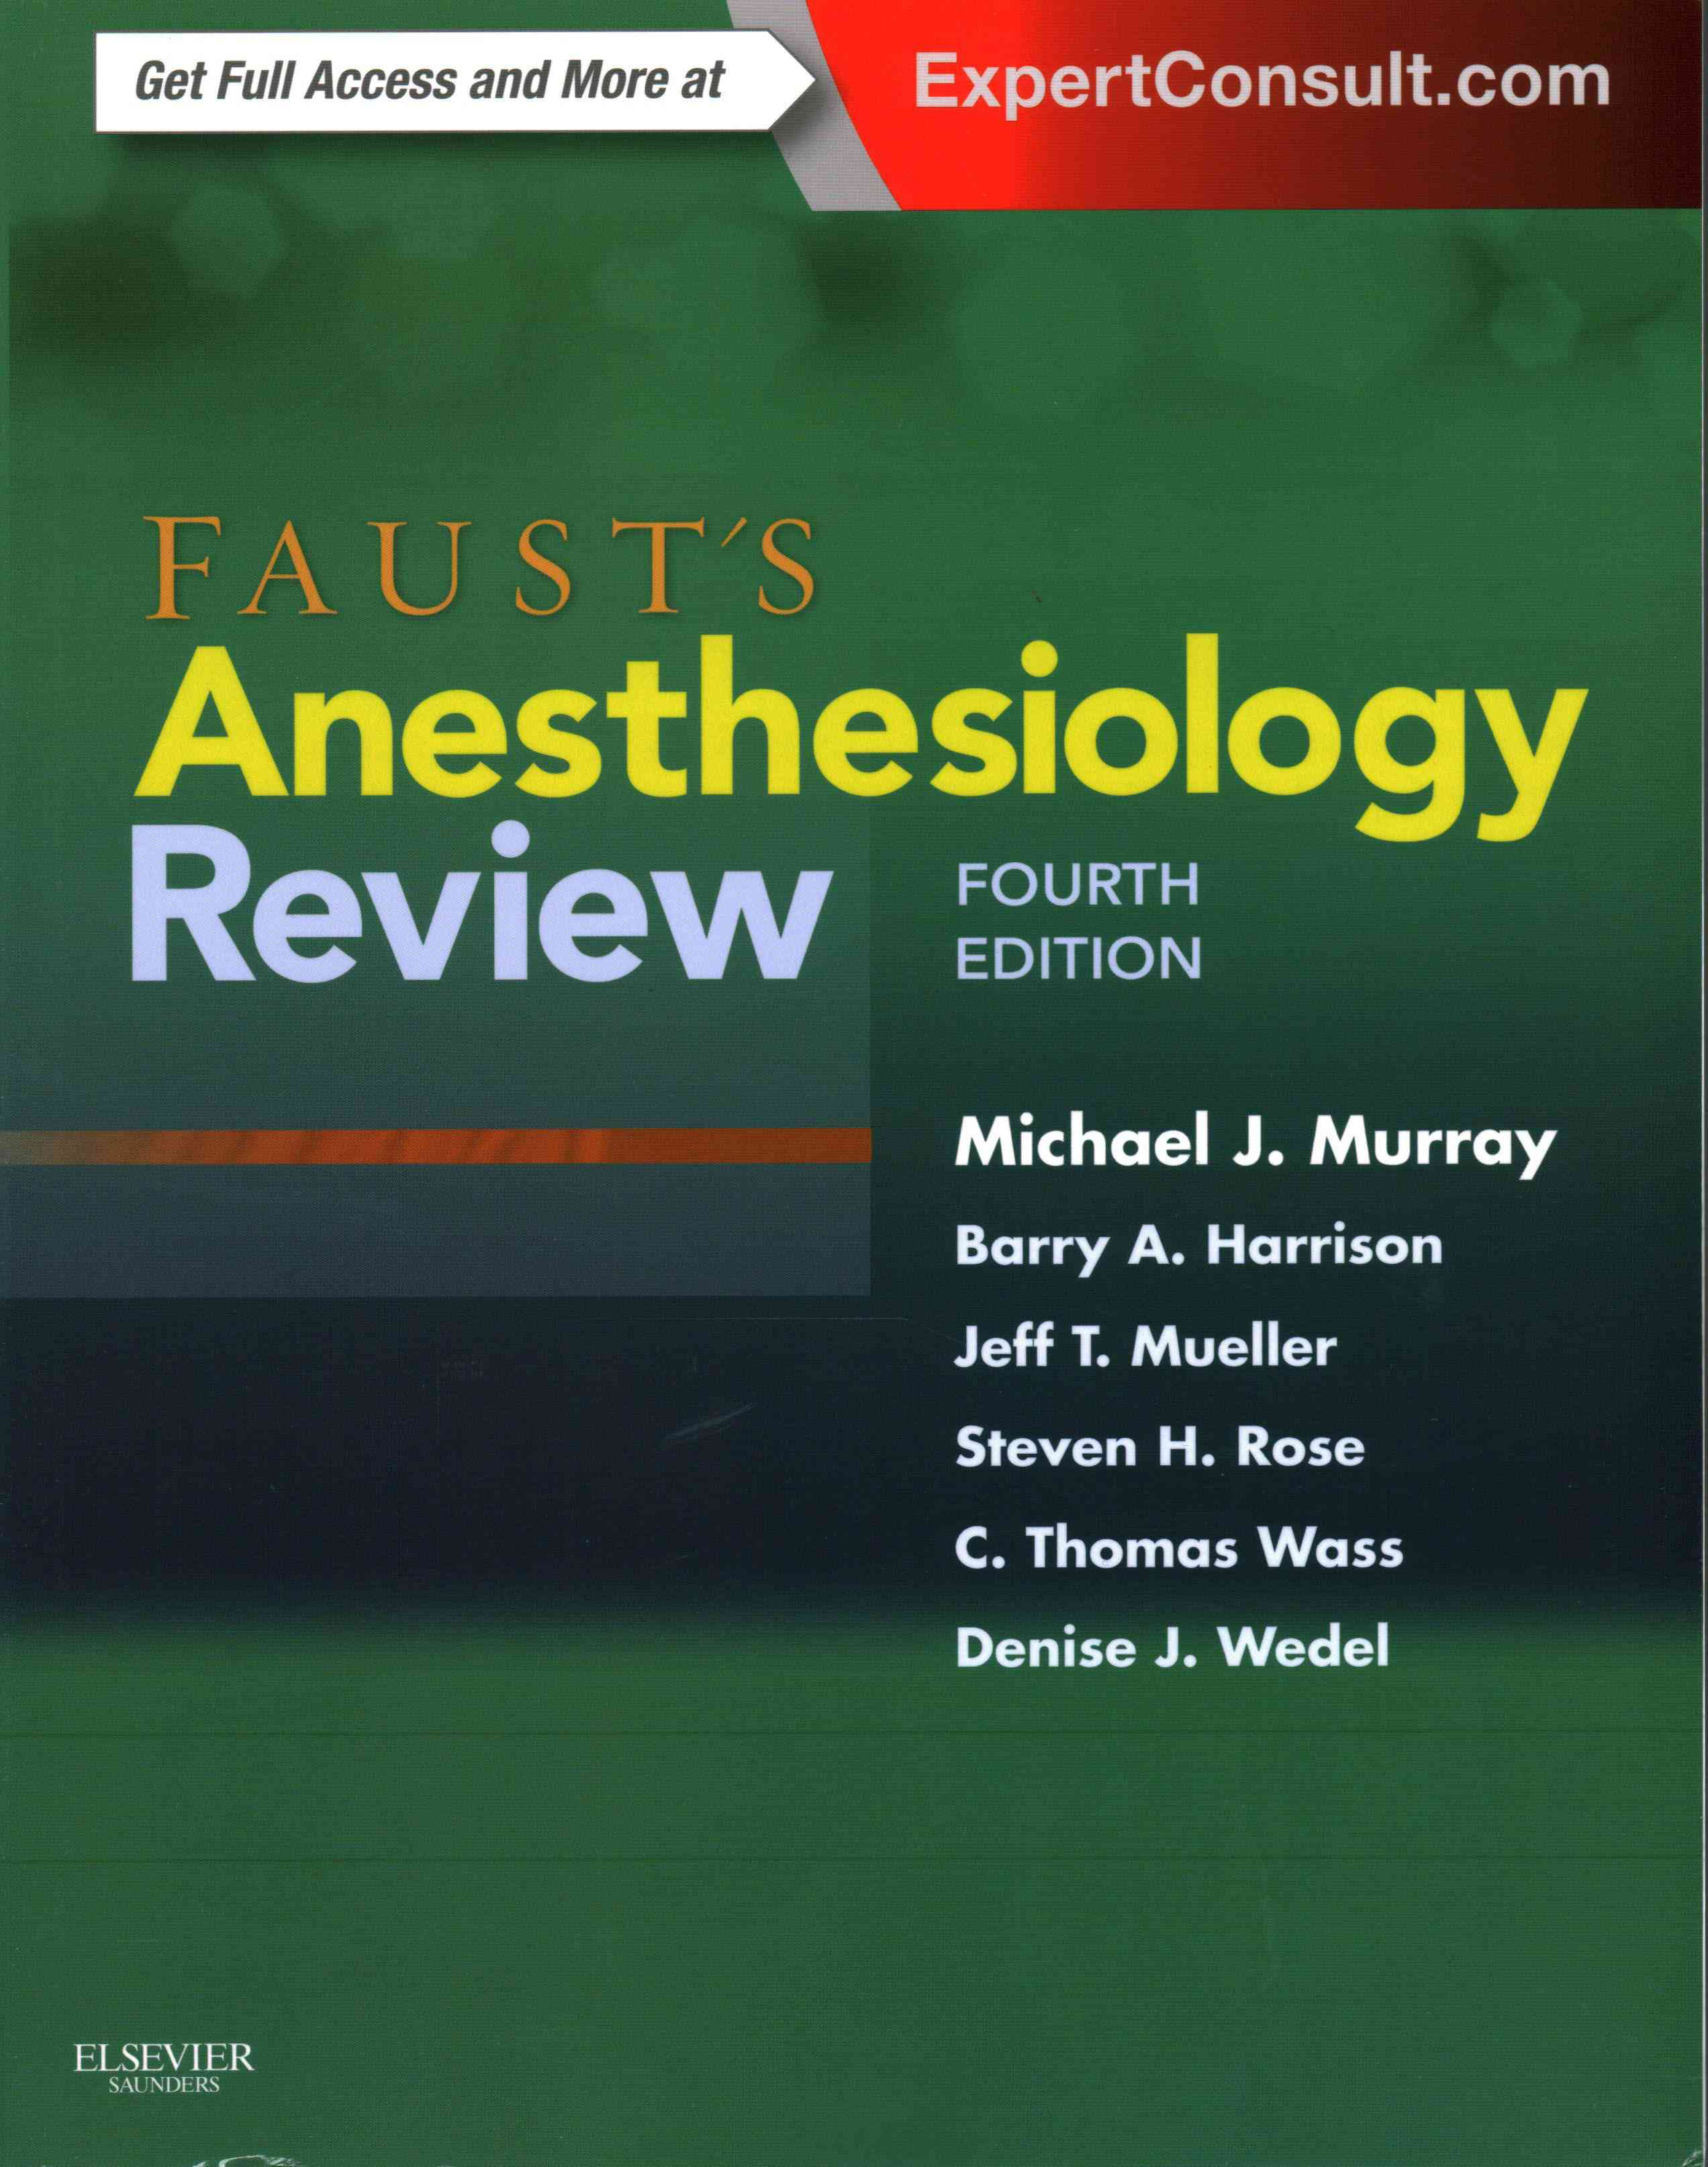 Faust's Anesthesiology Review